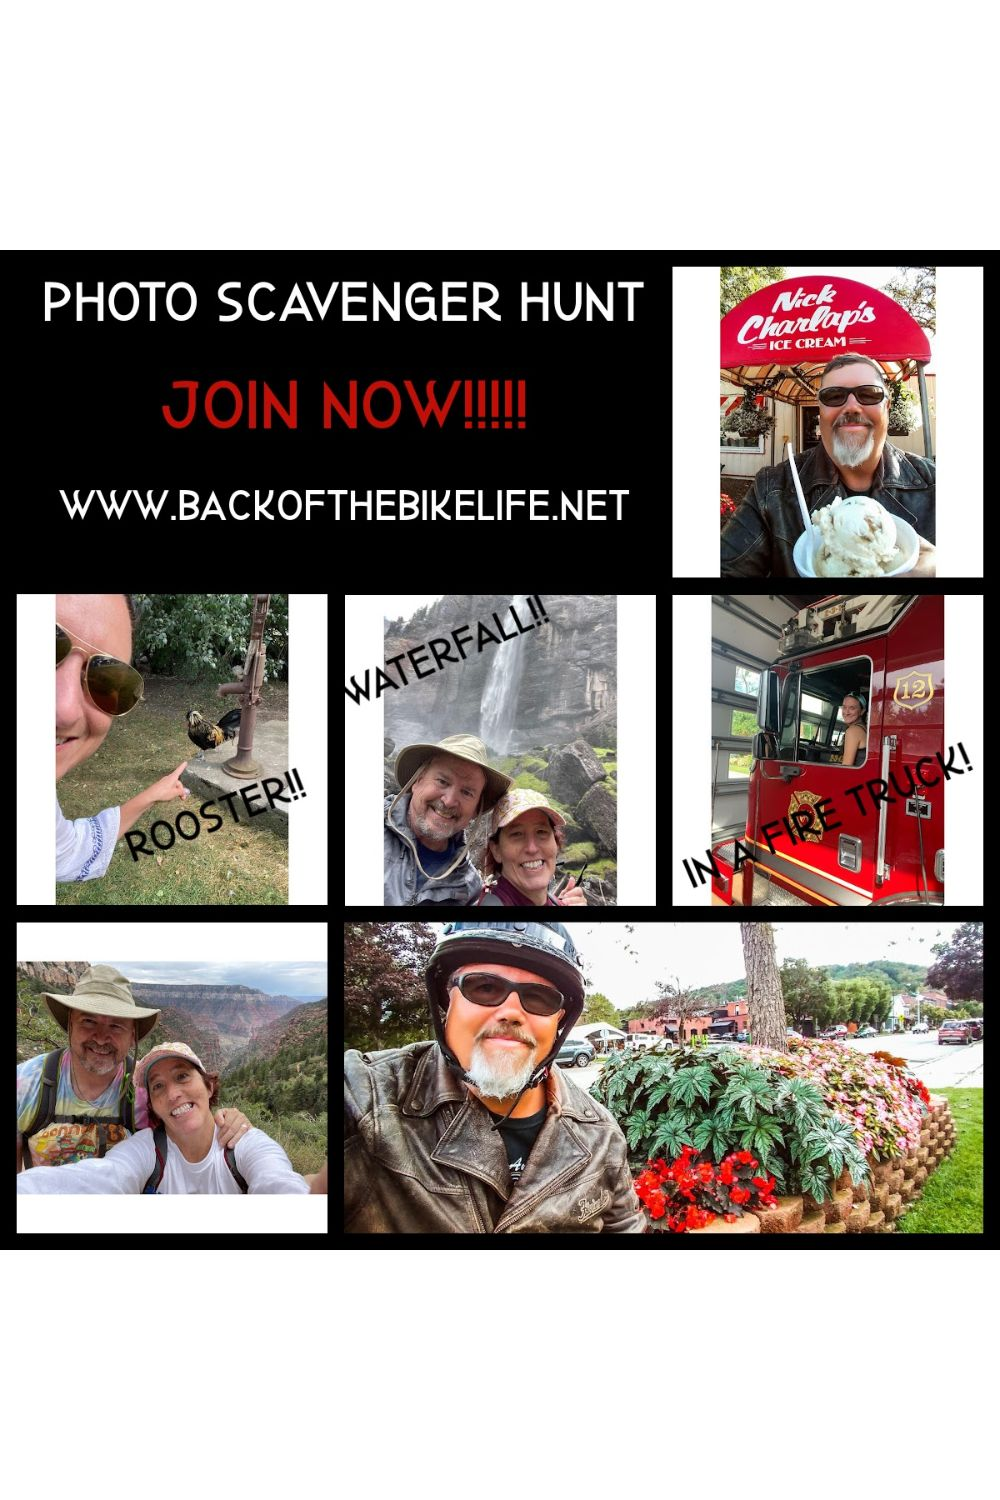 Check Out The Awesome Photo Scavenger Hunt Contest Photos!